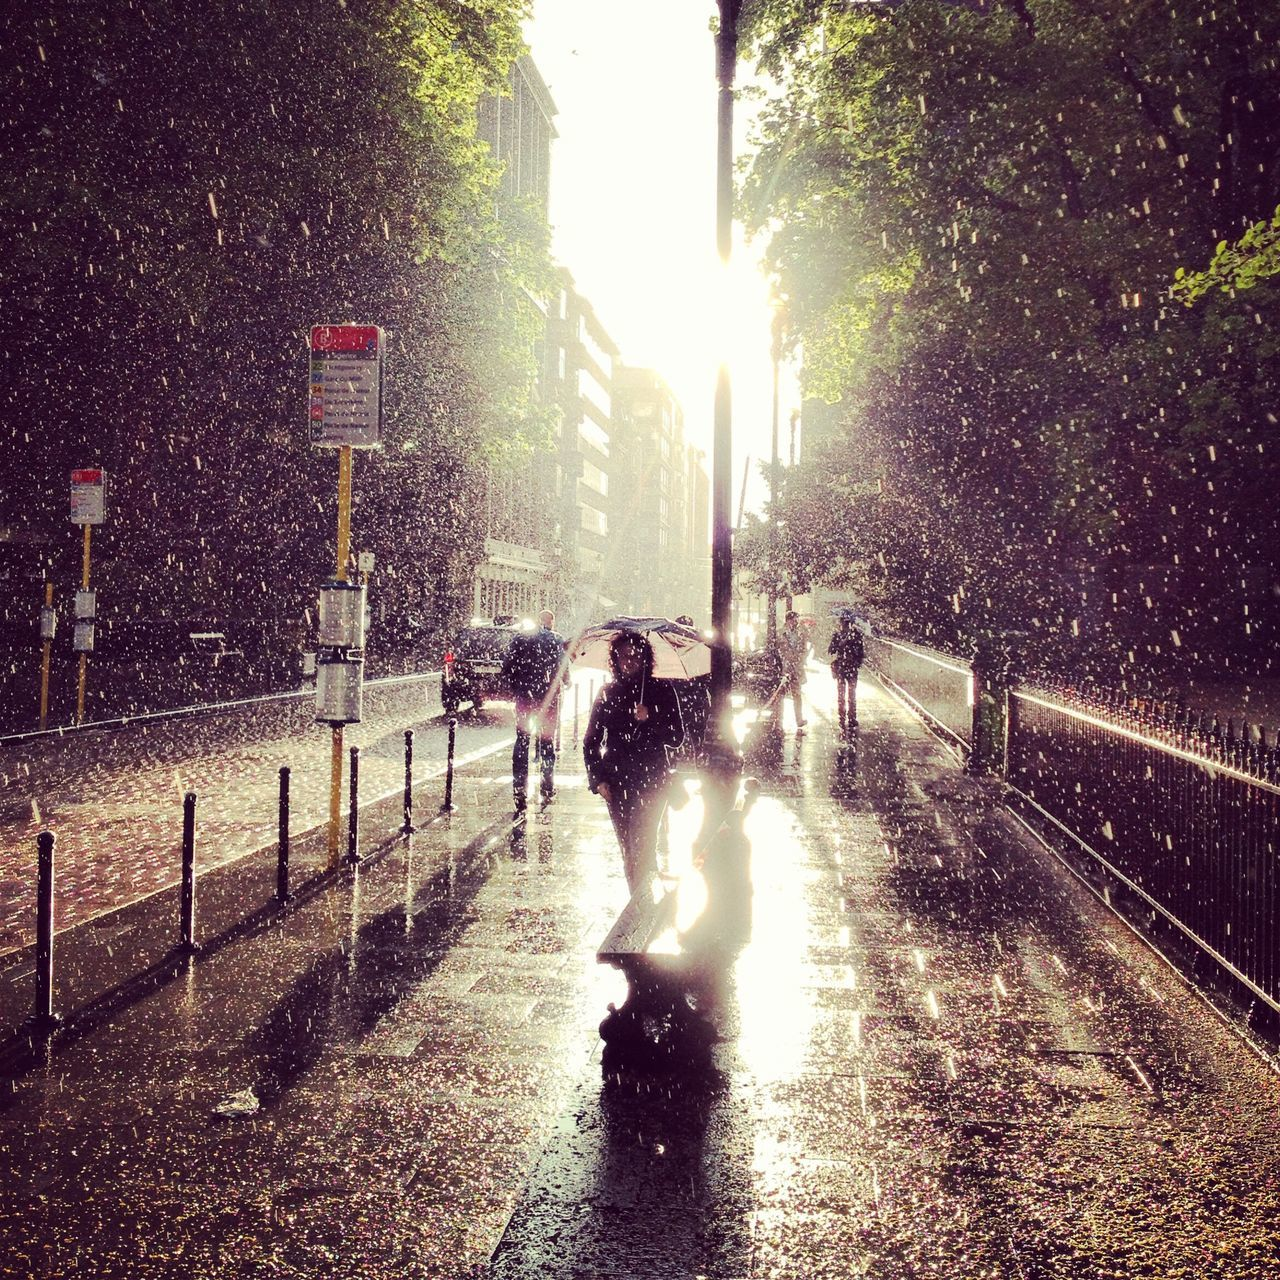 street, wet, weather, the way forward, real people, walking, full length, architecture, outdoors, built structure, city, sunlight, road, building exterior, water, men, sky, nature, tree, mammal, people